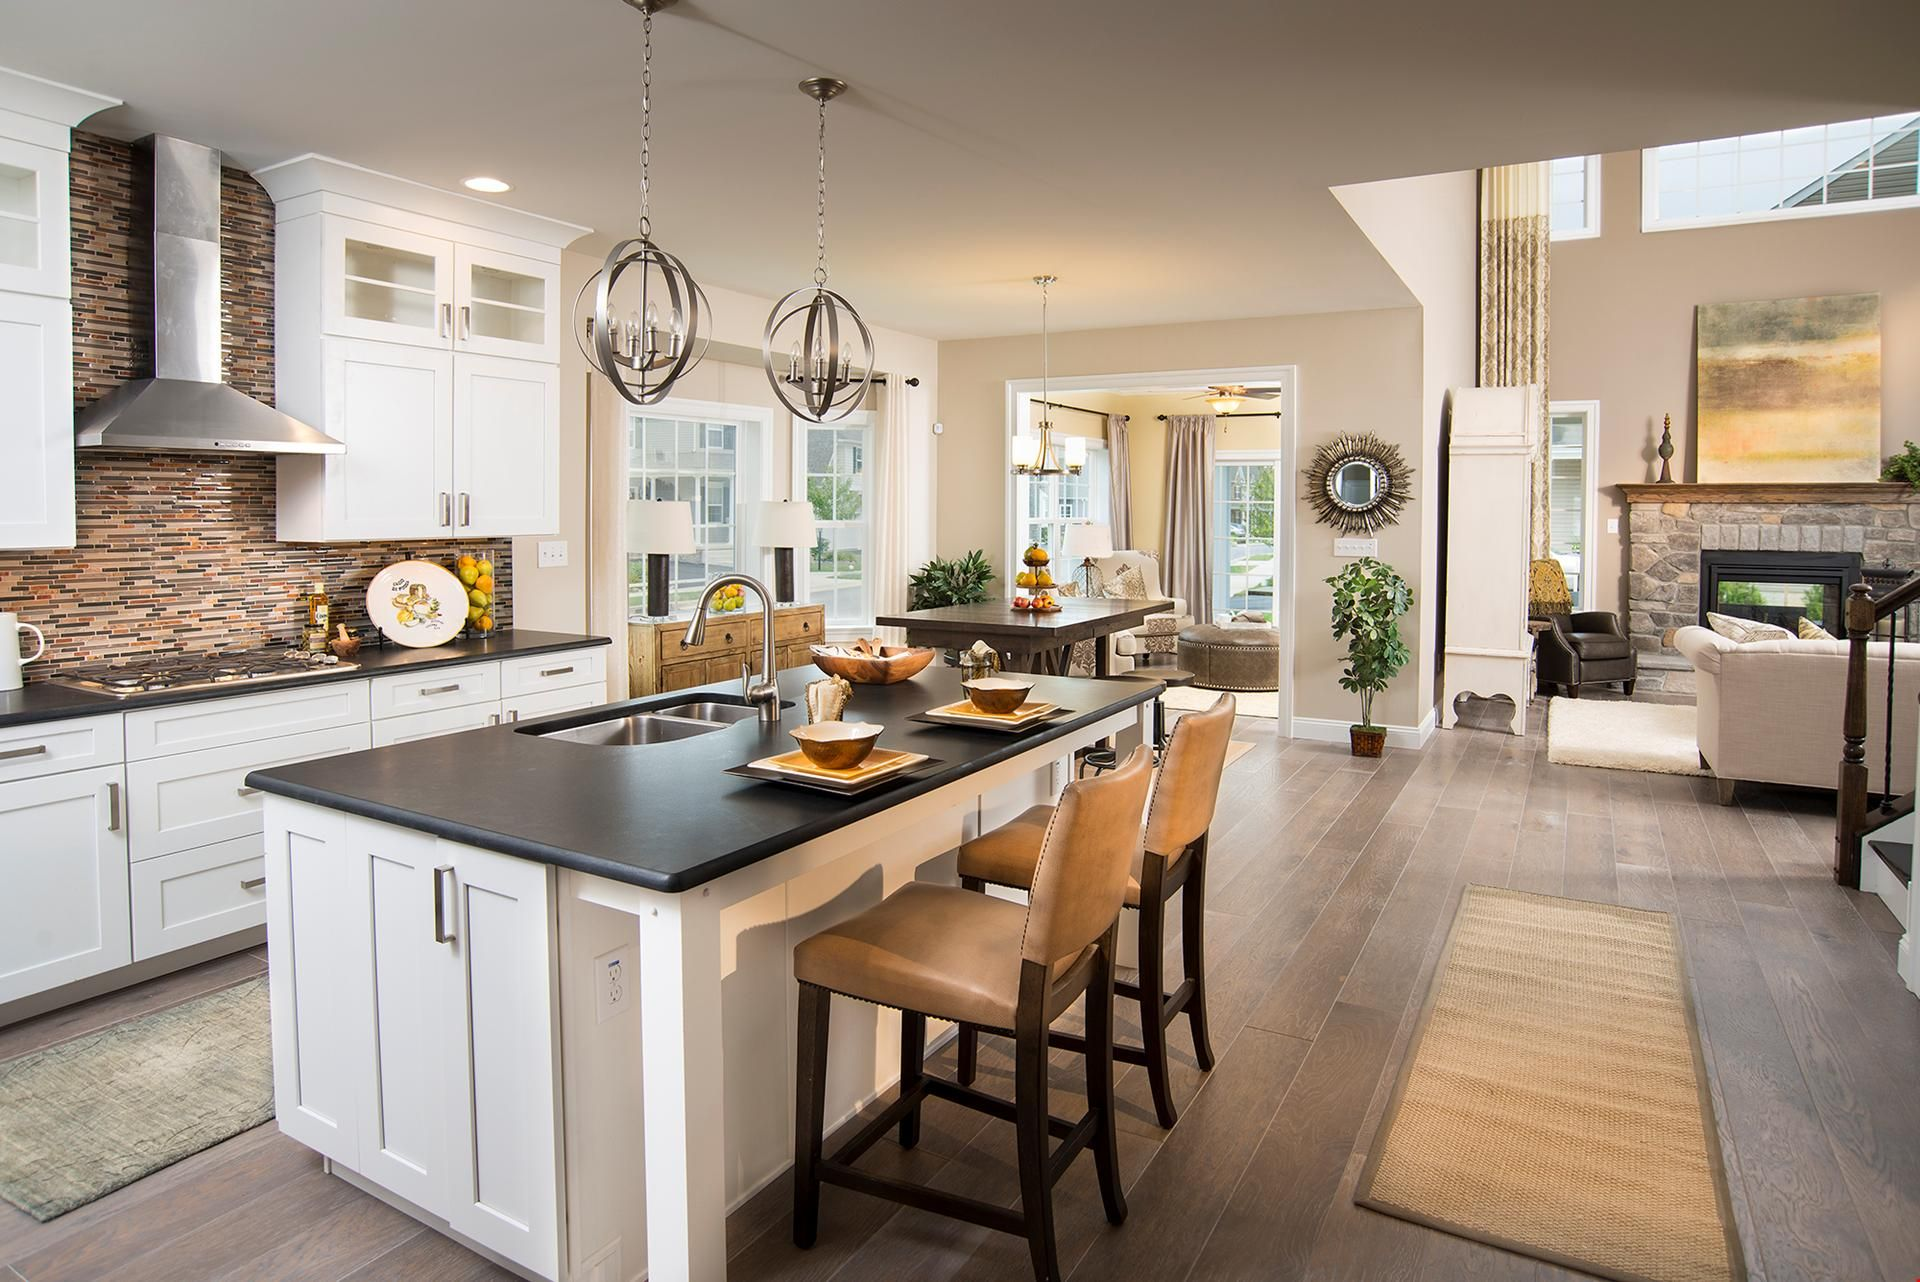 What's your favorite design touch in this kitchen? A new